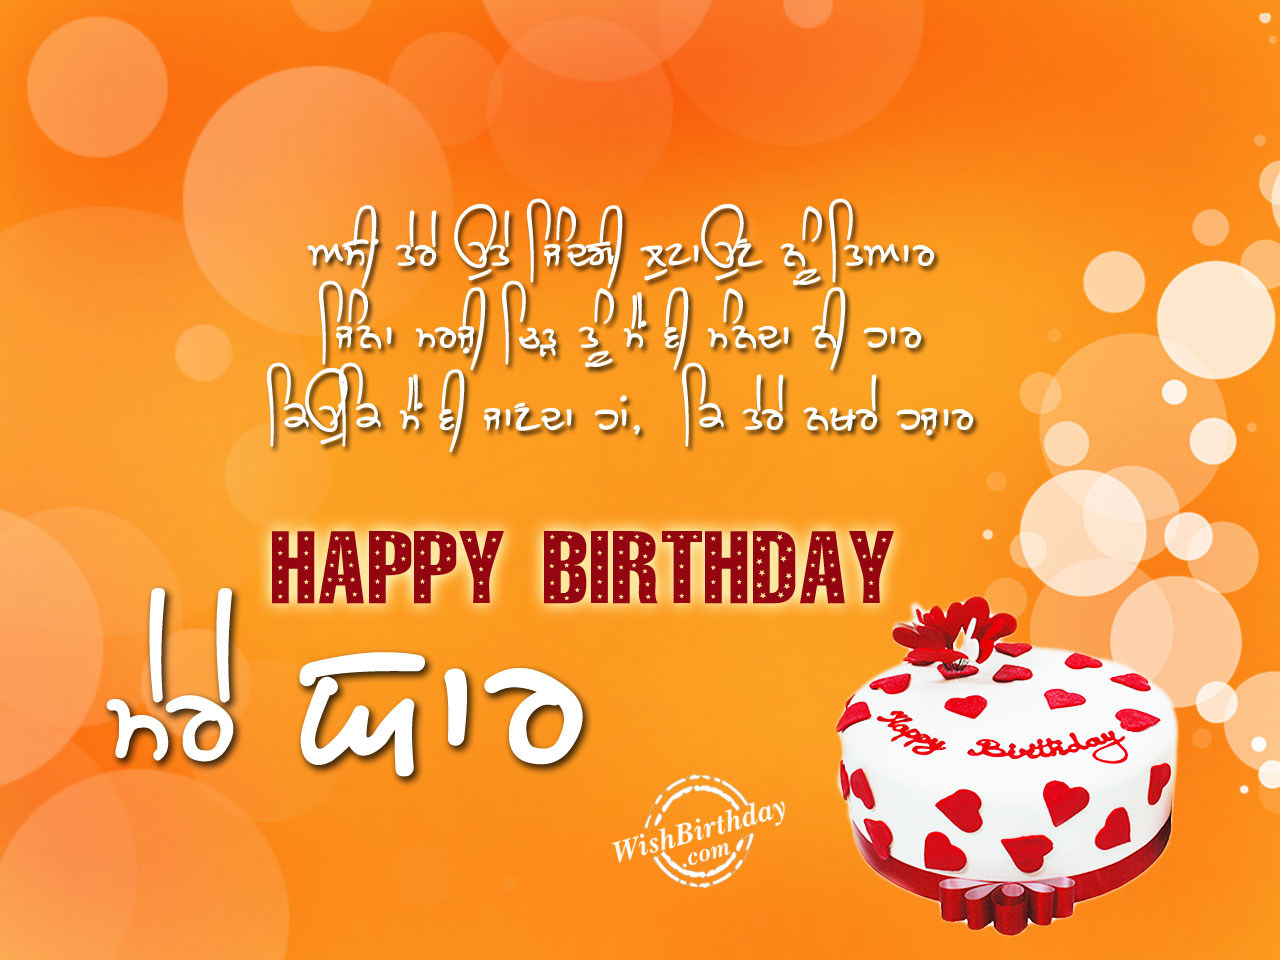 Birthday wishes in punjabi images pictures